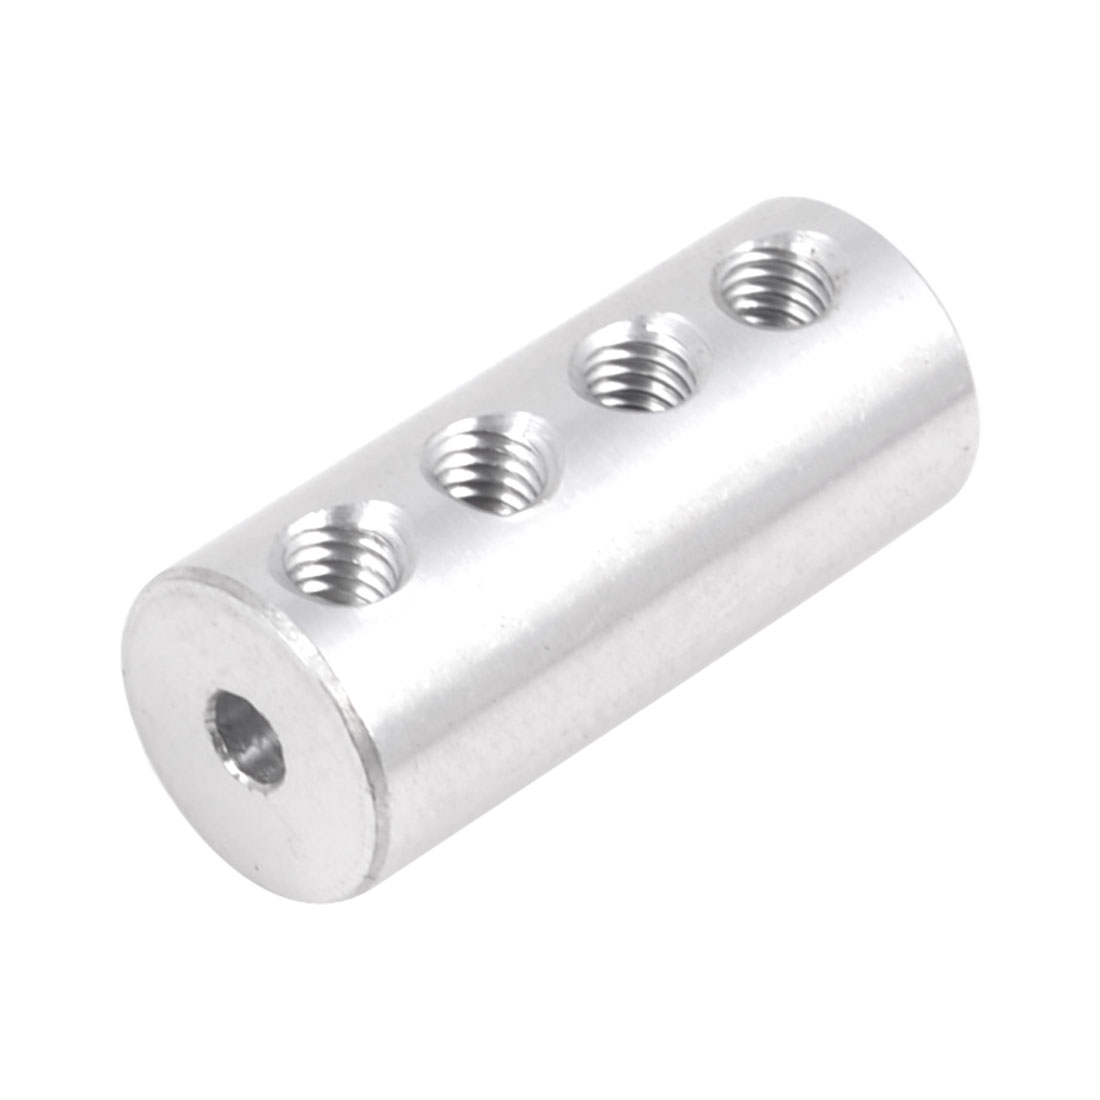 2mm to 3mm Inner Hole Aluminum Tube Coupling Flex Collet for RC Model Boat